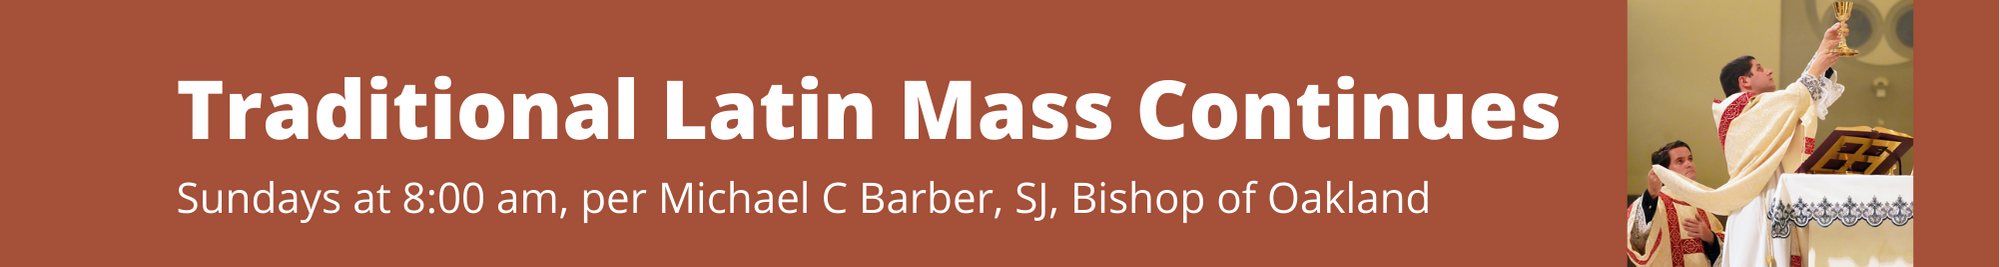 Traditional Latin Mass Continues Banner